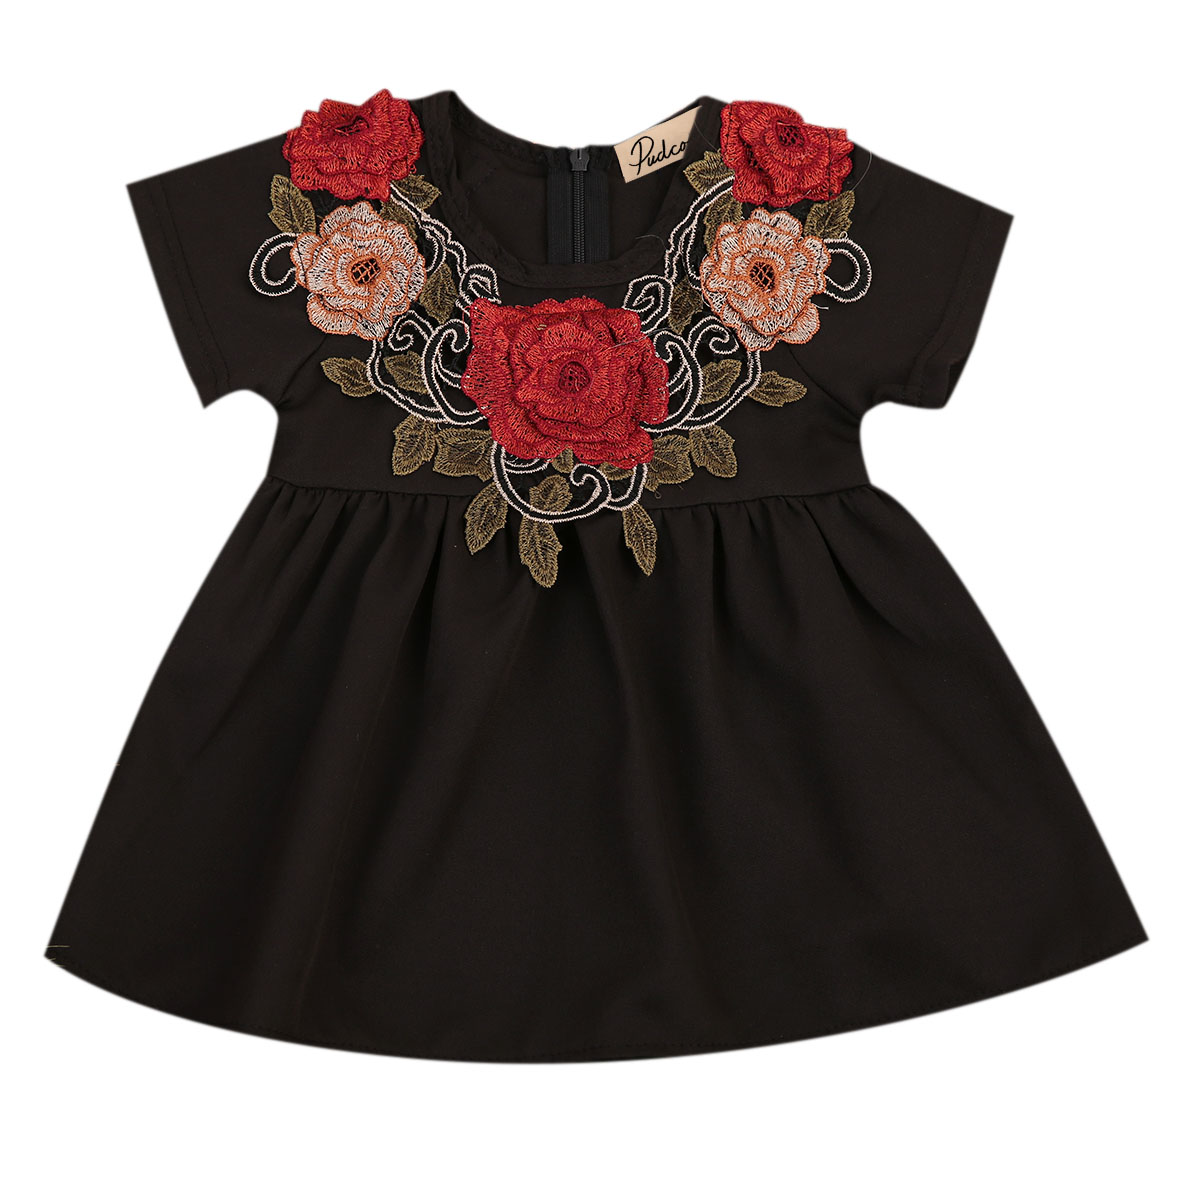 Summer Kids Baby Girl Embroidered Flower Dress Black Short Sleeve Floral Princess Party Holiday Dresses Infant Clothing 6M-4Y